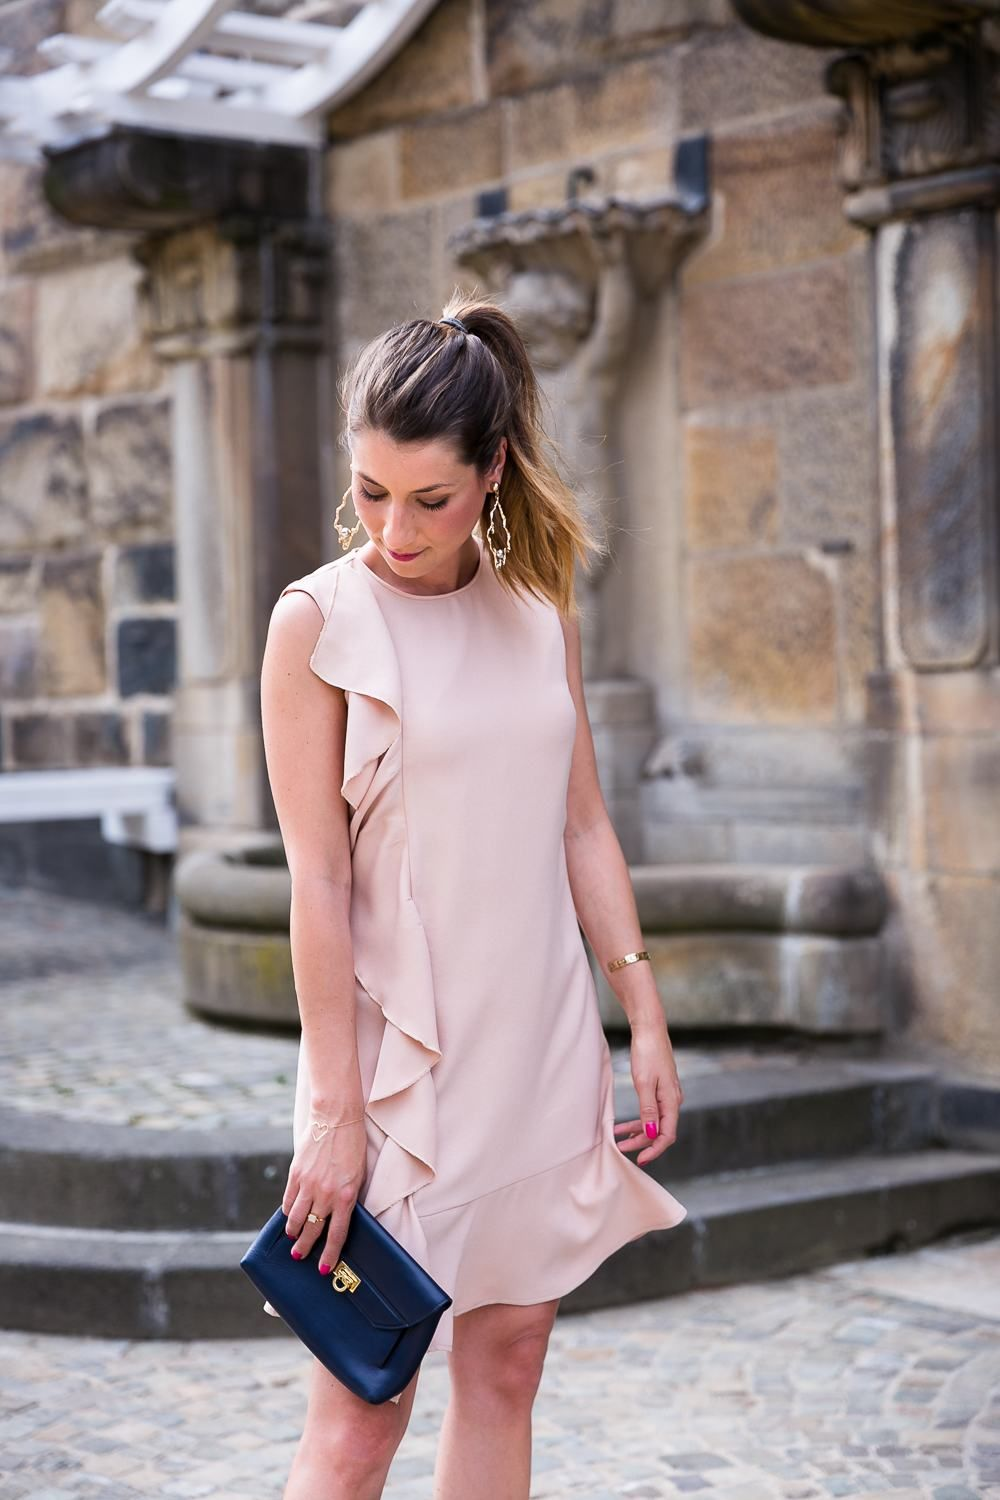 Wedding guest outfit inspo - pink dress with ruffles and statement earrings  Kleid Mit Volant f43f86d6466